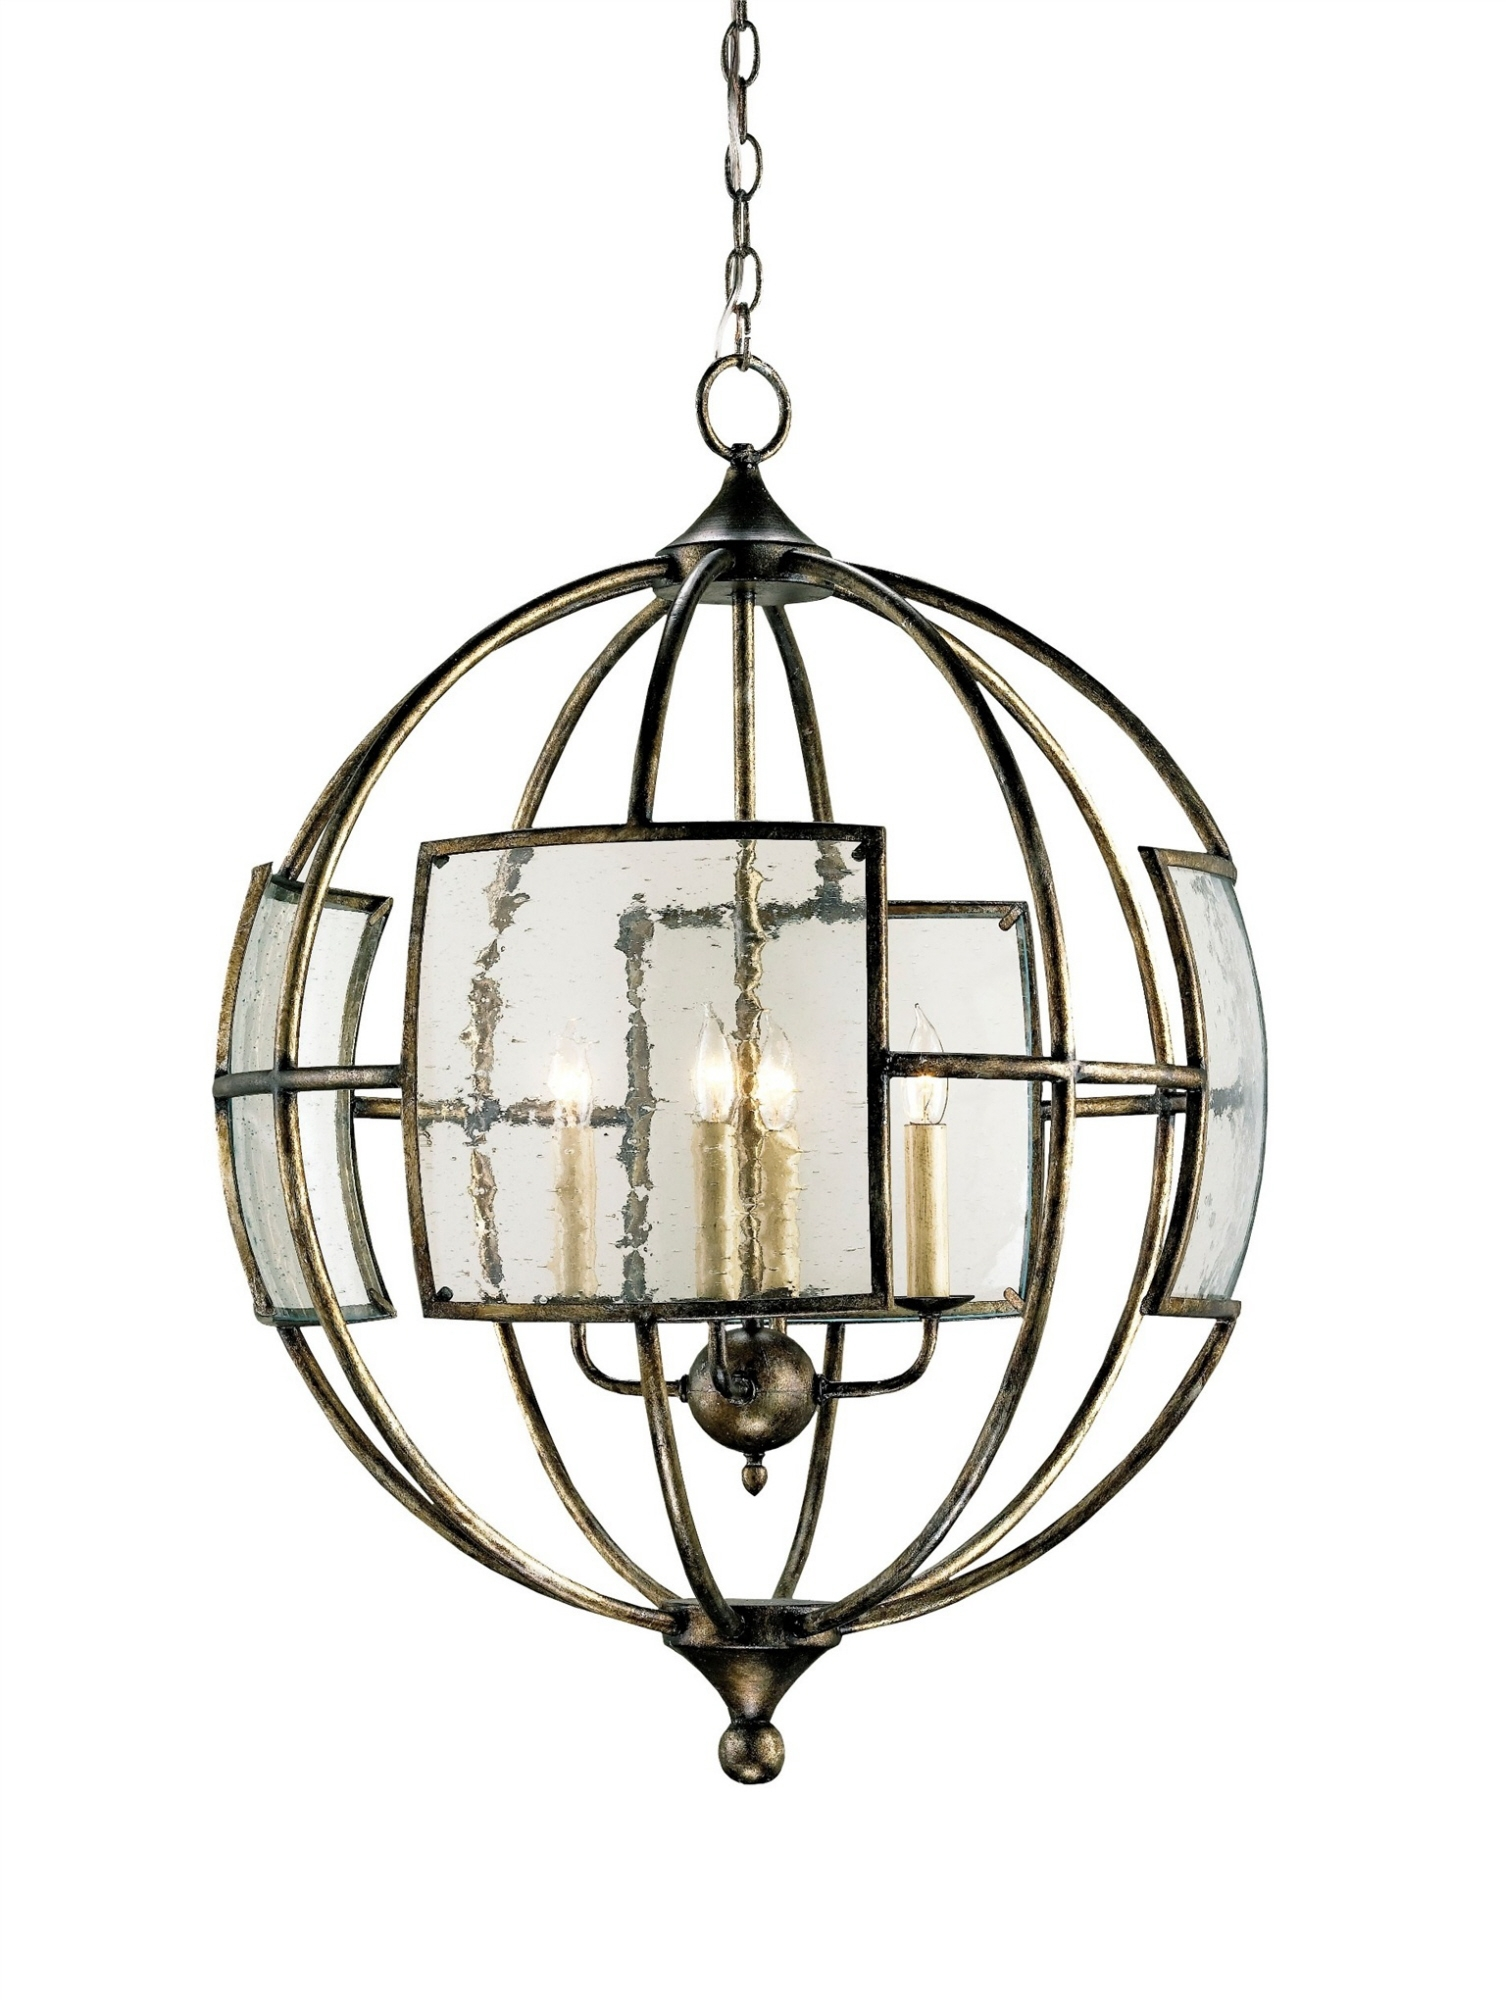 Broxton Orb Chandelier Lighting Currey And Company Intended For Orb Chandeliers (Image 7 of 25)